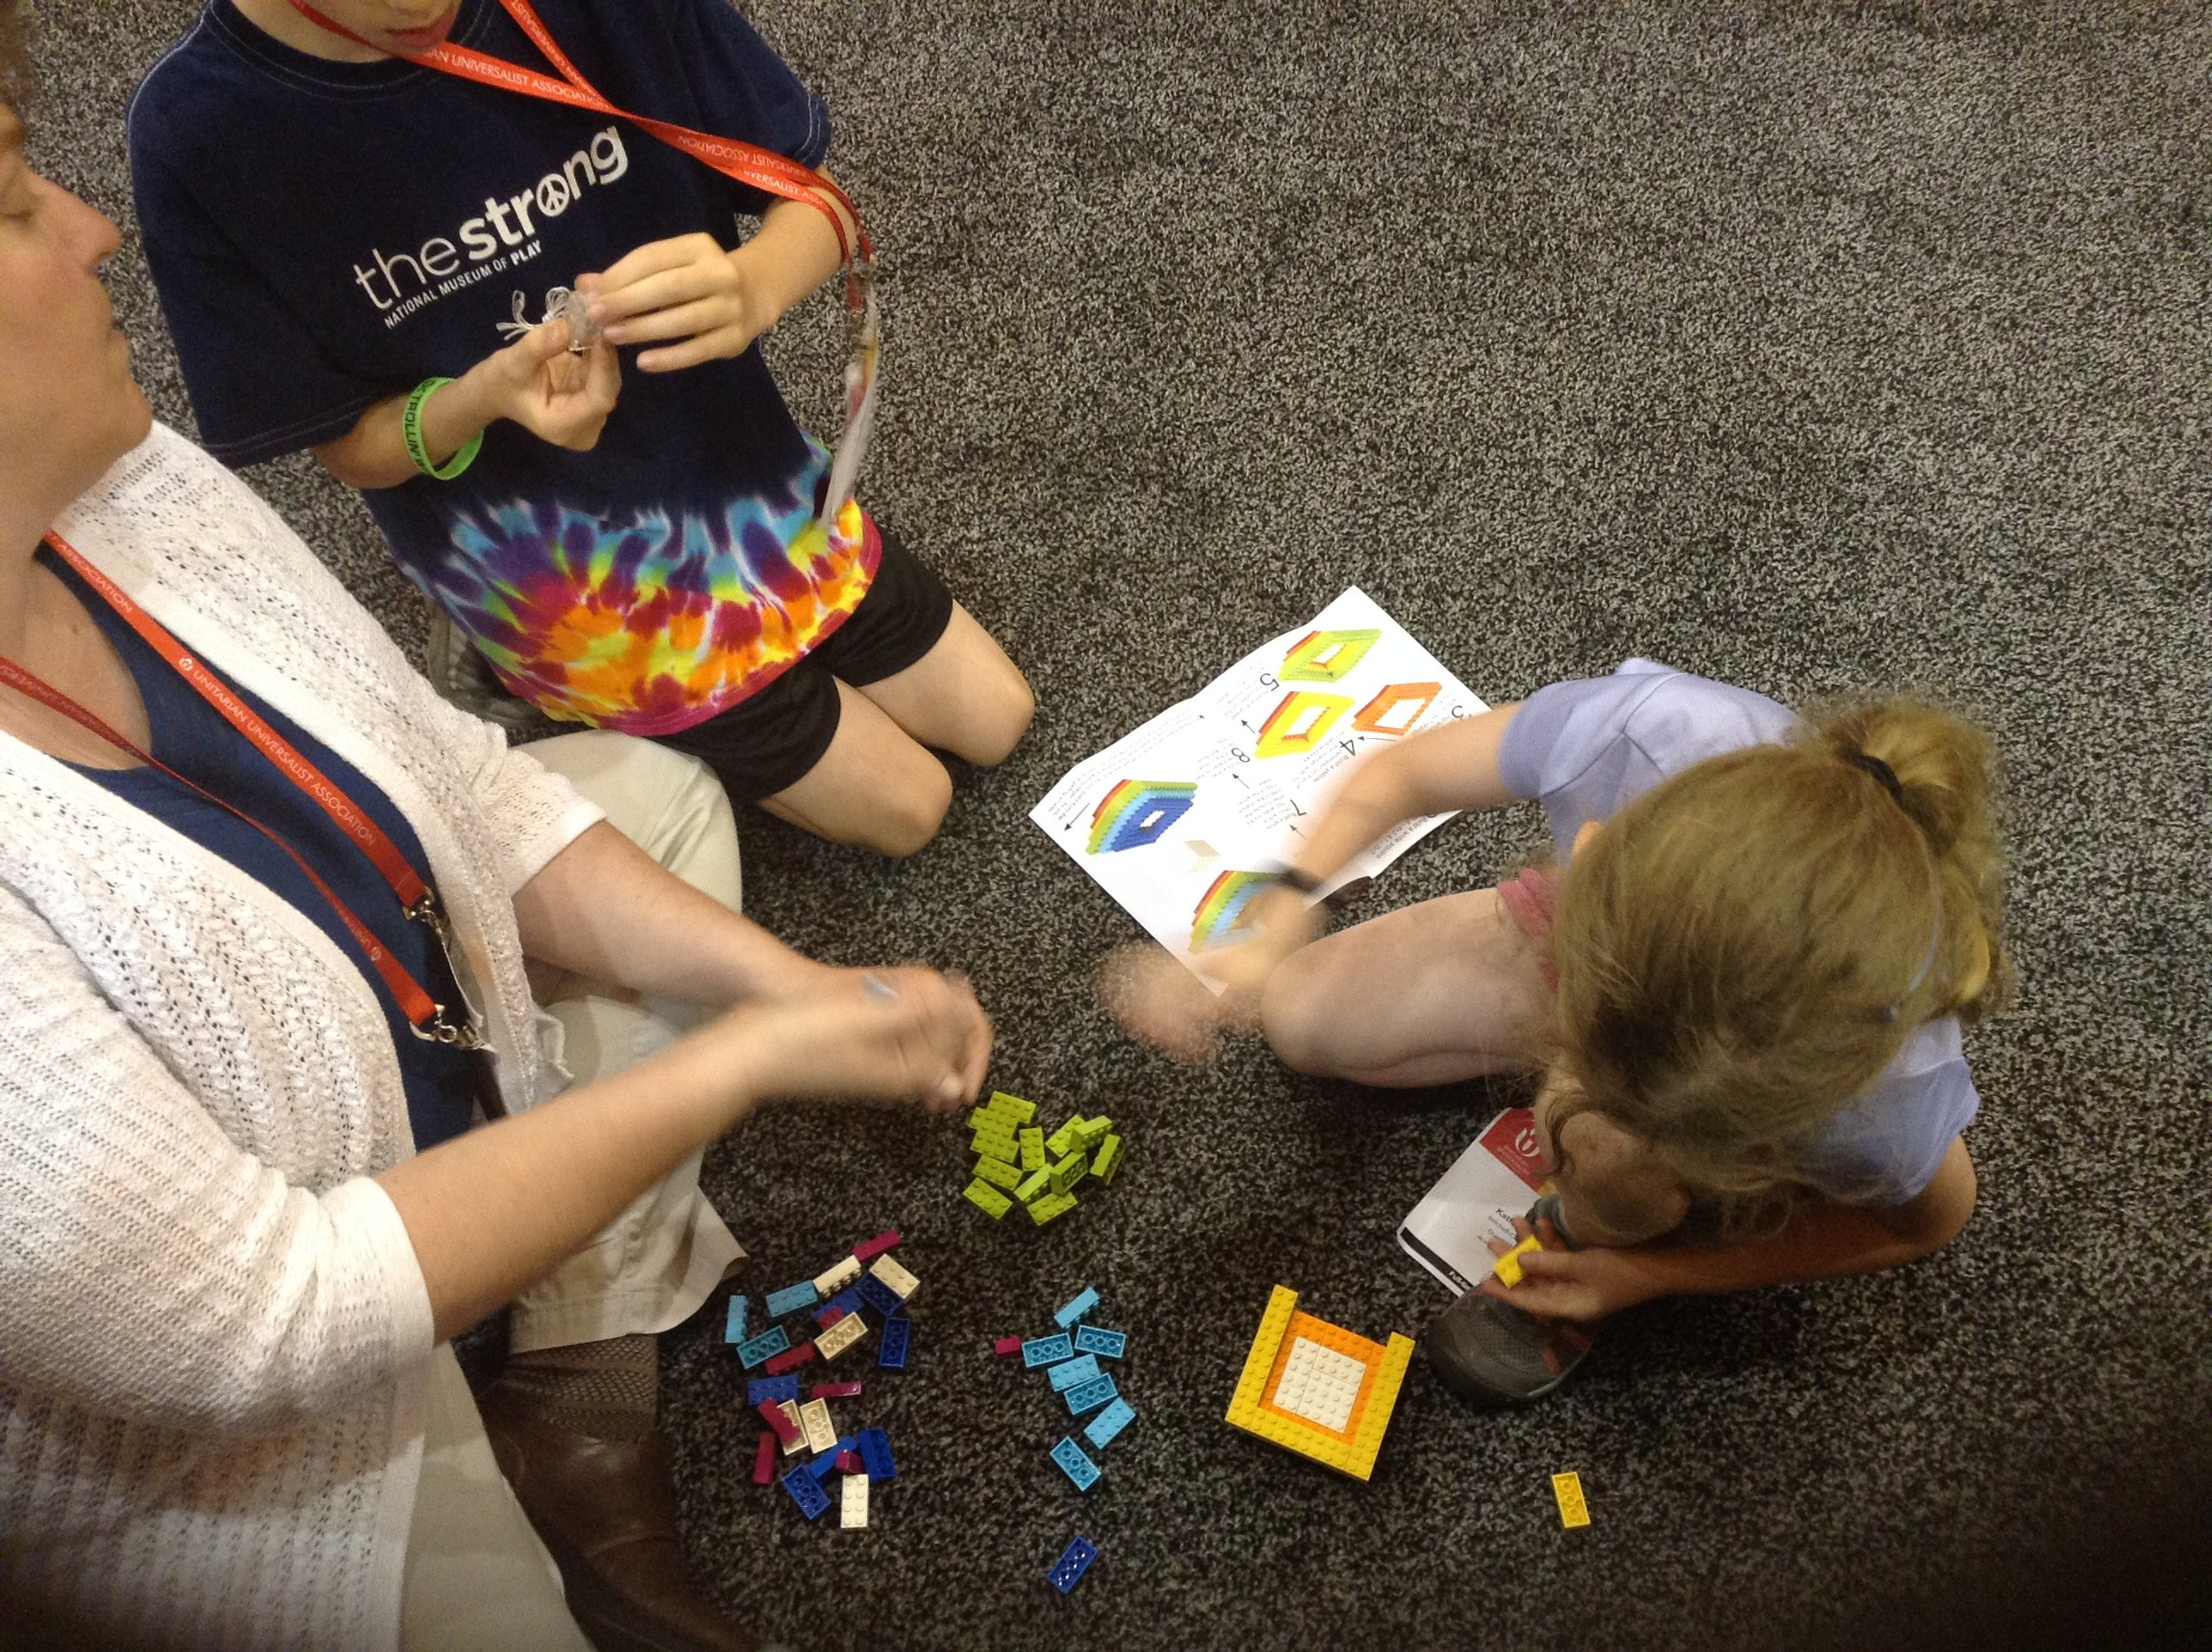 At the 2017 Unitarian Universalist General Assembly, the LEGO Chalice was a hit with kids of all ages. Here is a family taking a break, building the LEGO Chalice at my husband's (UU sculptor Brian Watson) booth.